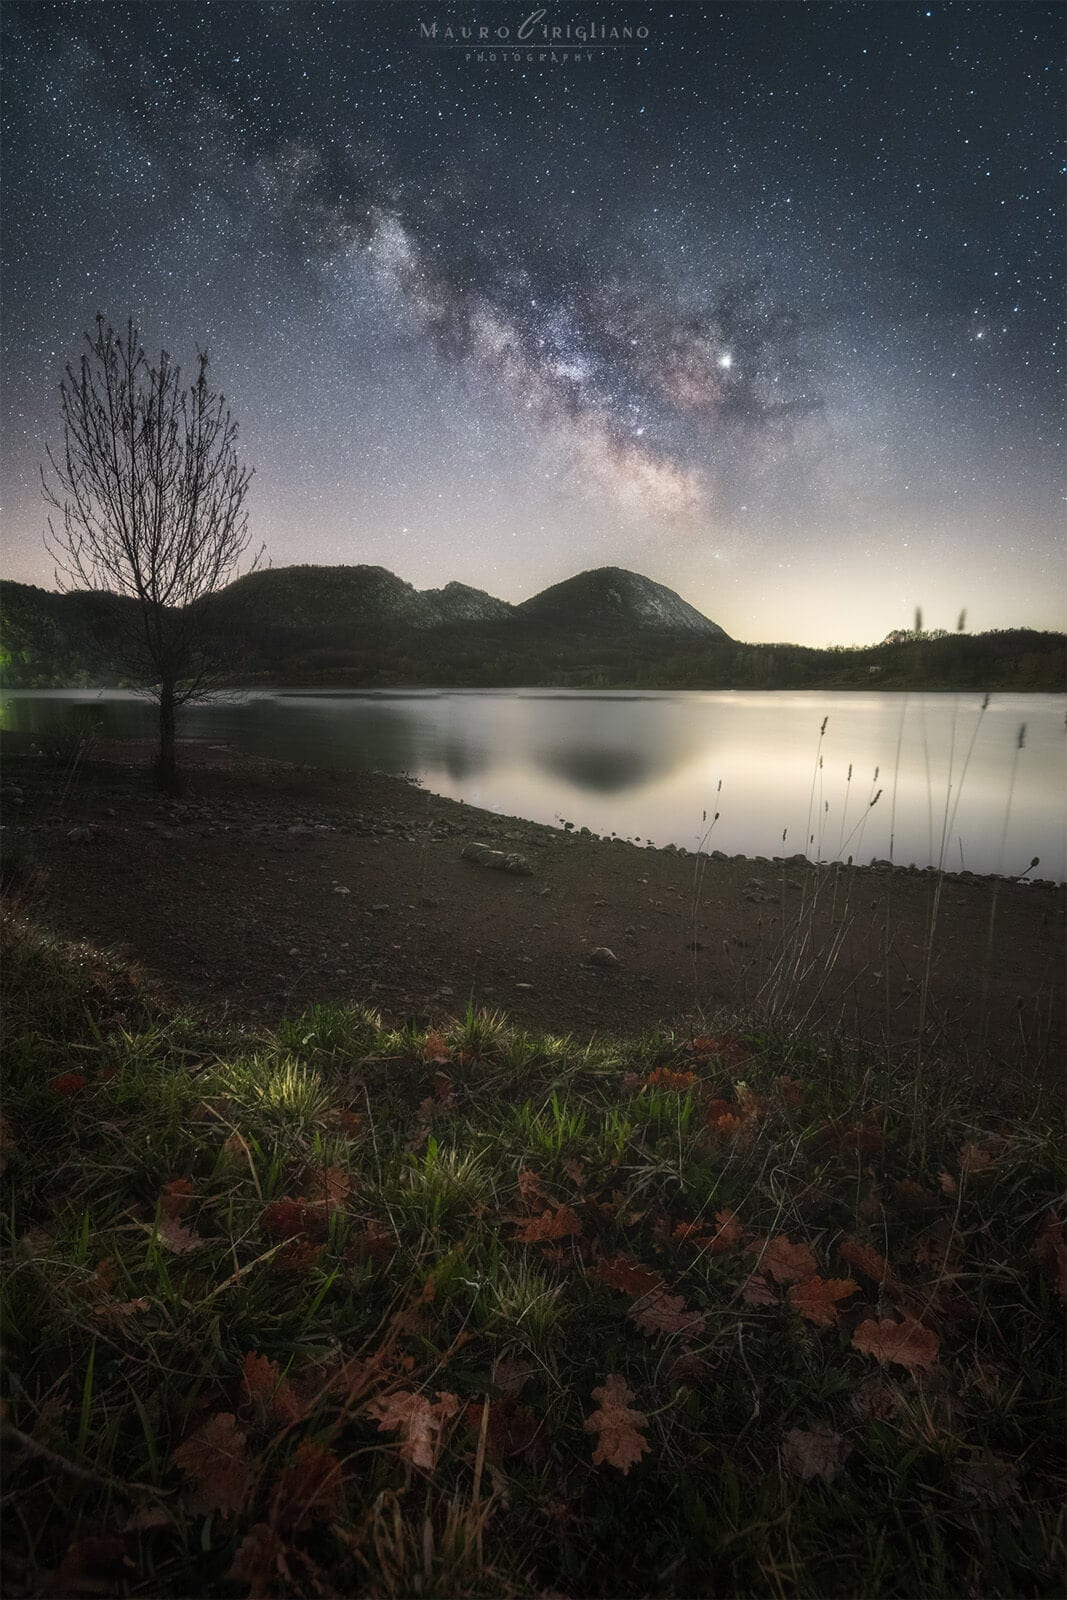 Milkyway and lake